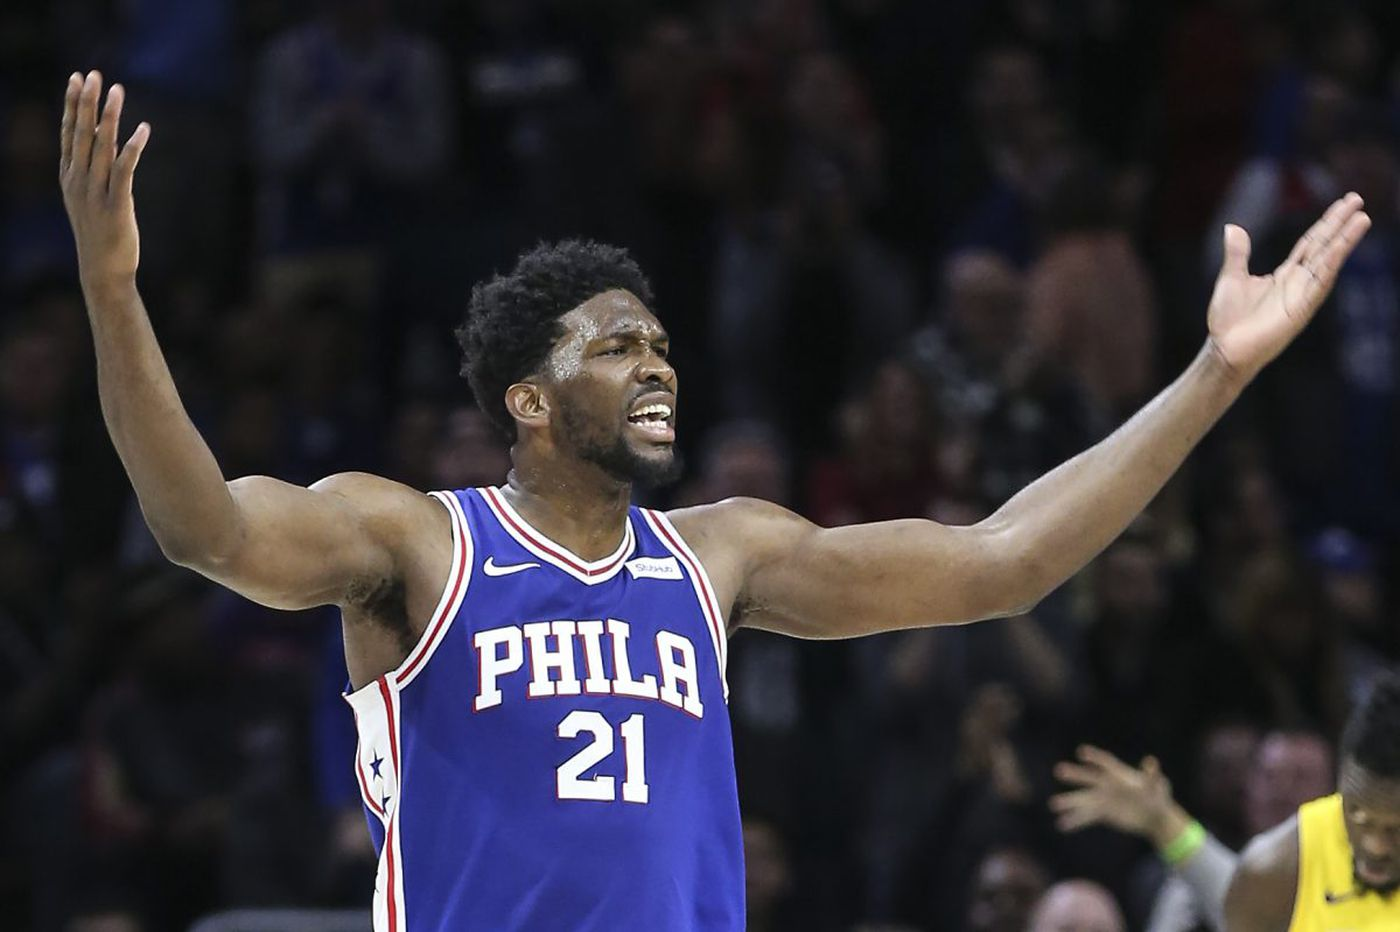 Sixers' Joel Embiid, JJ Redick to face New York Knicks